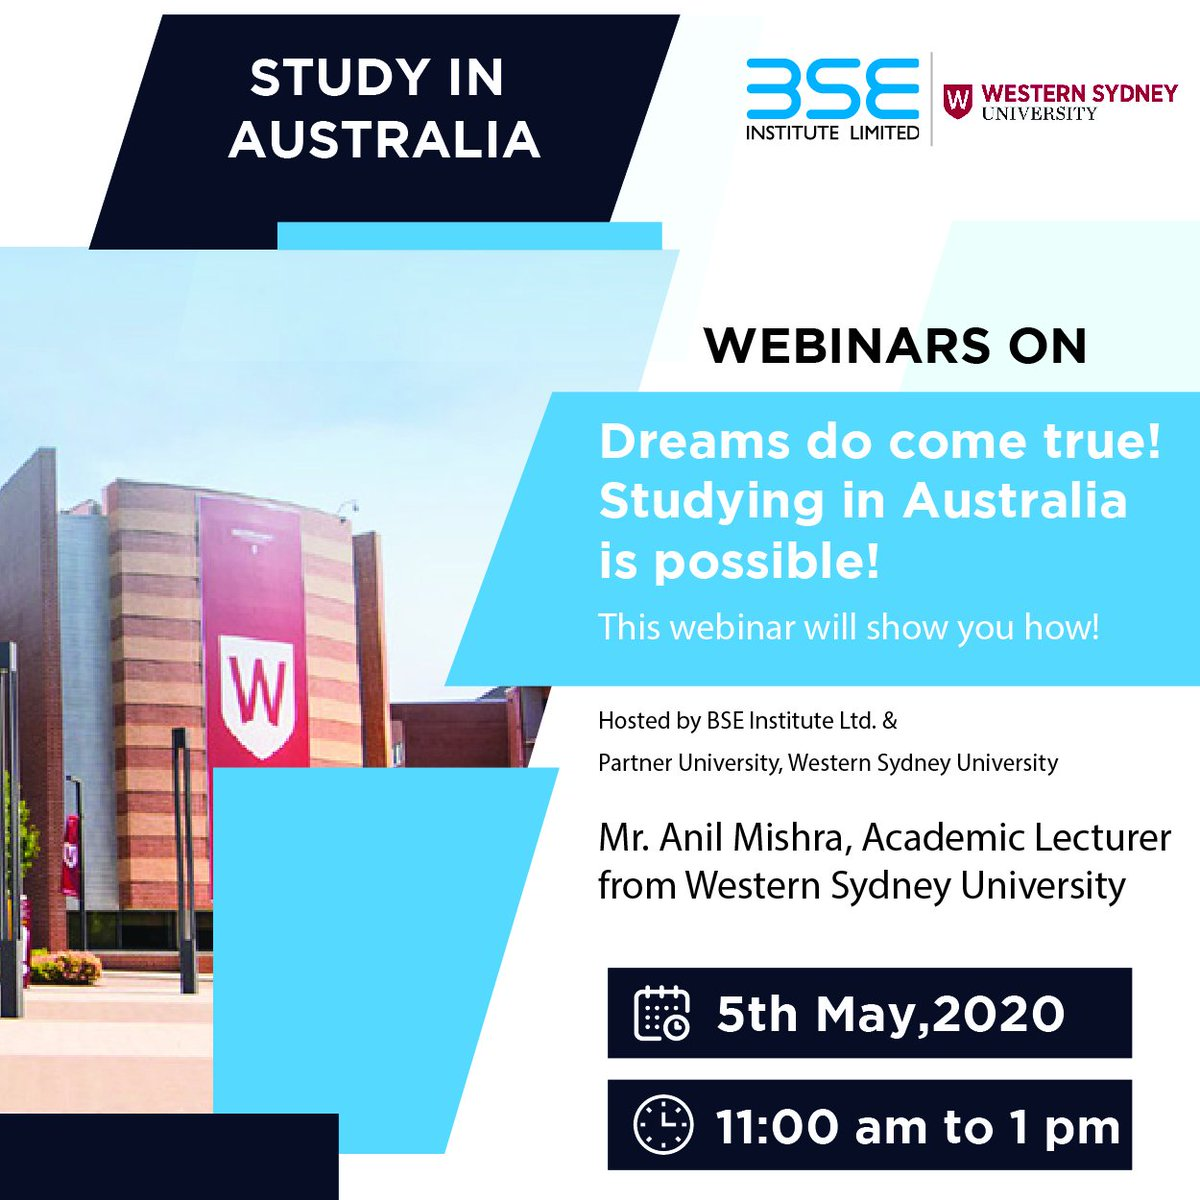 BSE Institute Ltd. is happy to announce a webinar for the students who are planning to study in Australia!  If you wish to be a part of this webinar, drop your email id in the comment below.    #bseinstituteltd #studyinternational pic.twitter.com/sQu2NYI5Vr